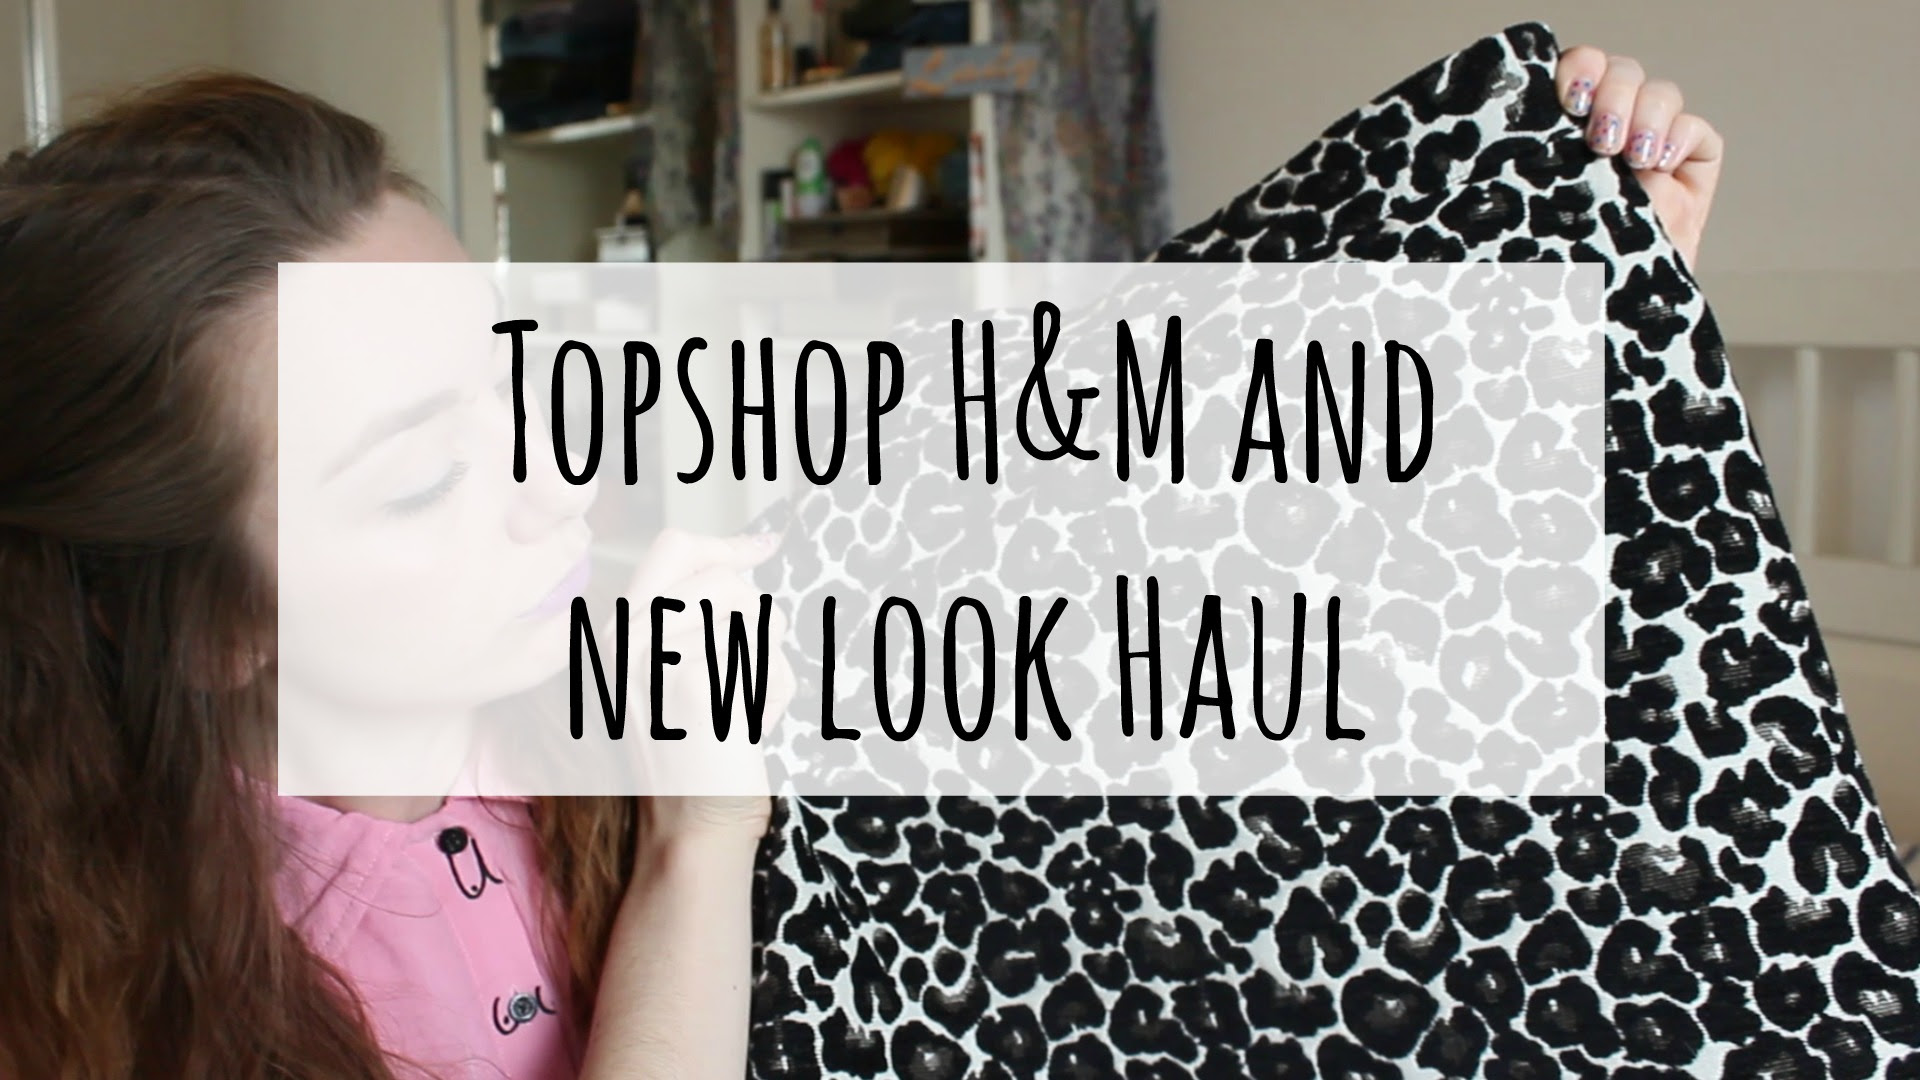 Topshop, H&M and New Look haul video 2016